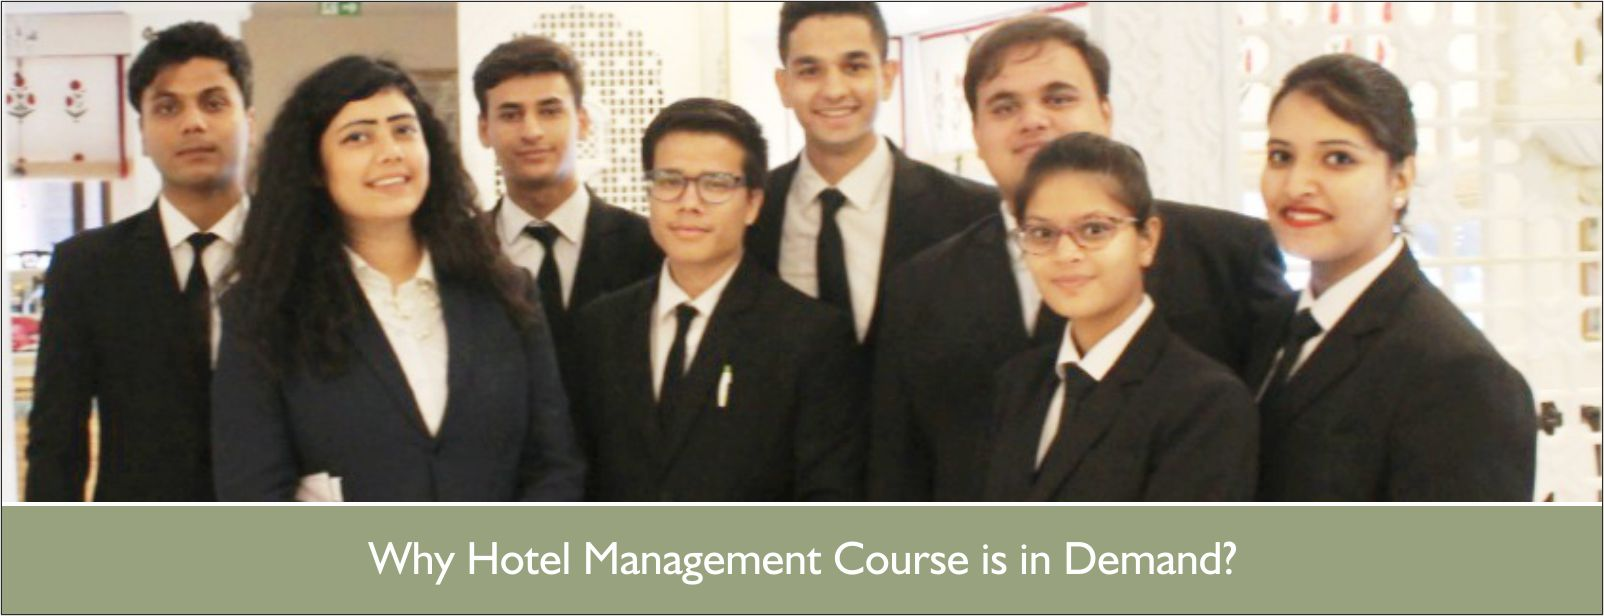 WHY HOTEL MANAGEMENT COURSE IS IN DEMAND?